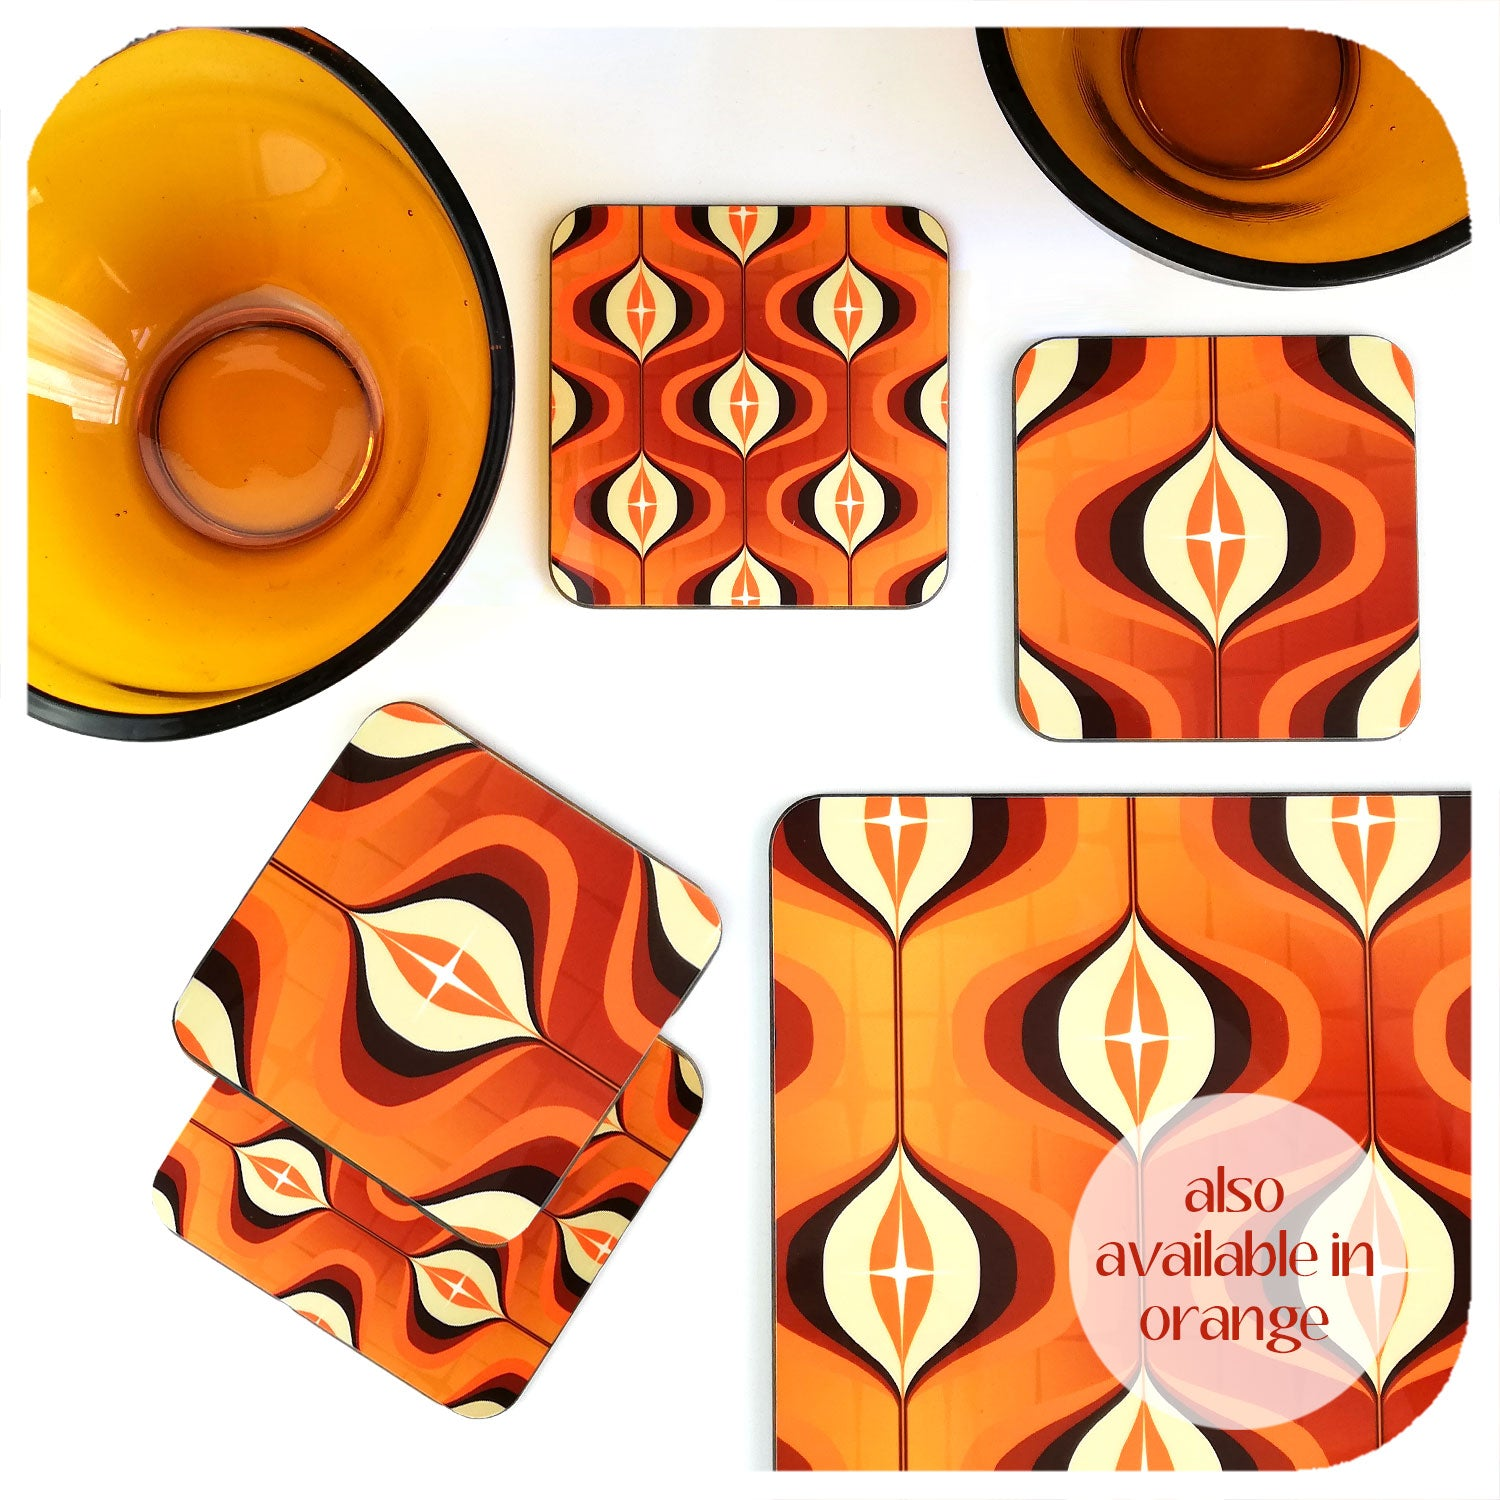 Orange 1970s Op Art Coasters & Placemat with vintage bowls | The Inkabilly Emporium